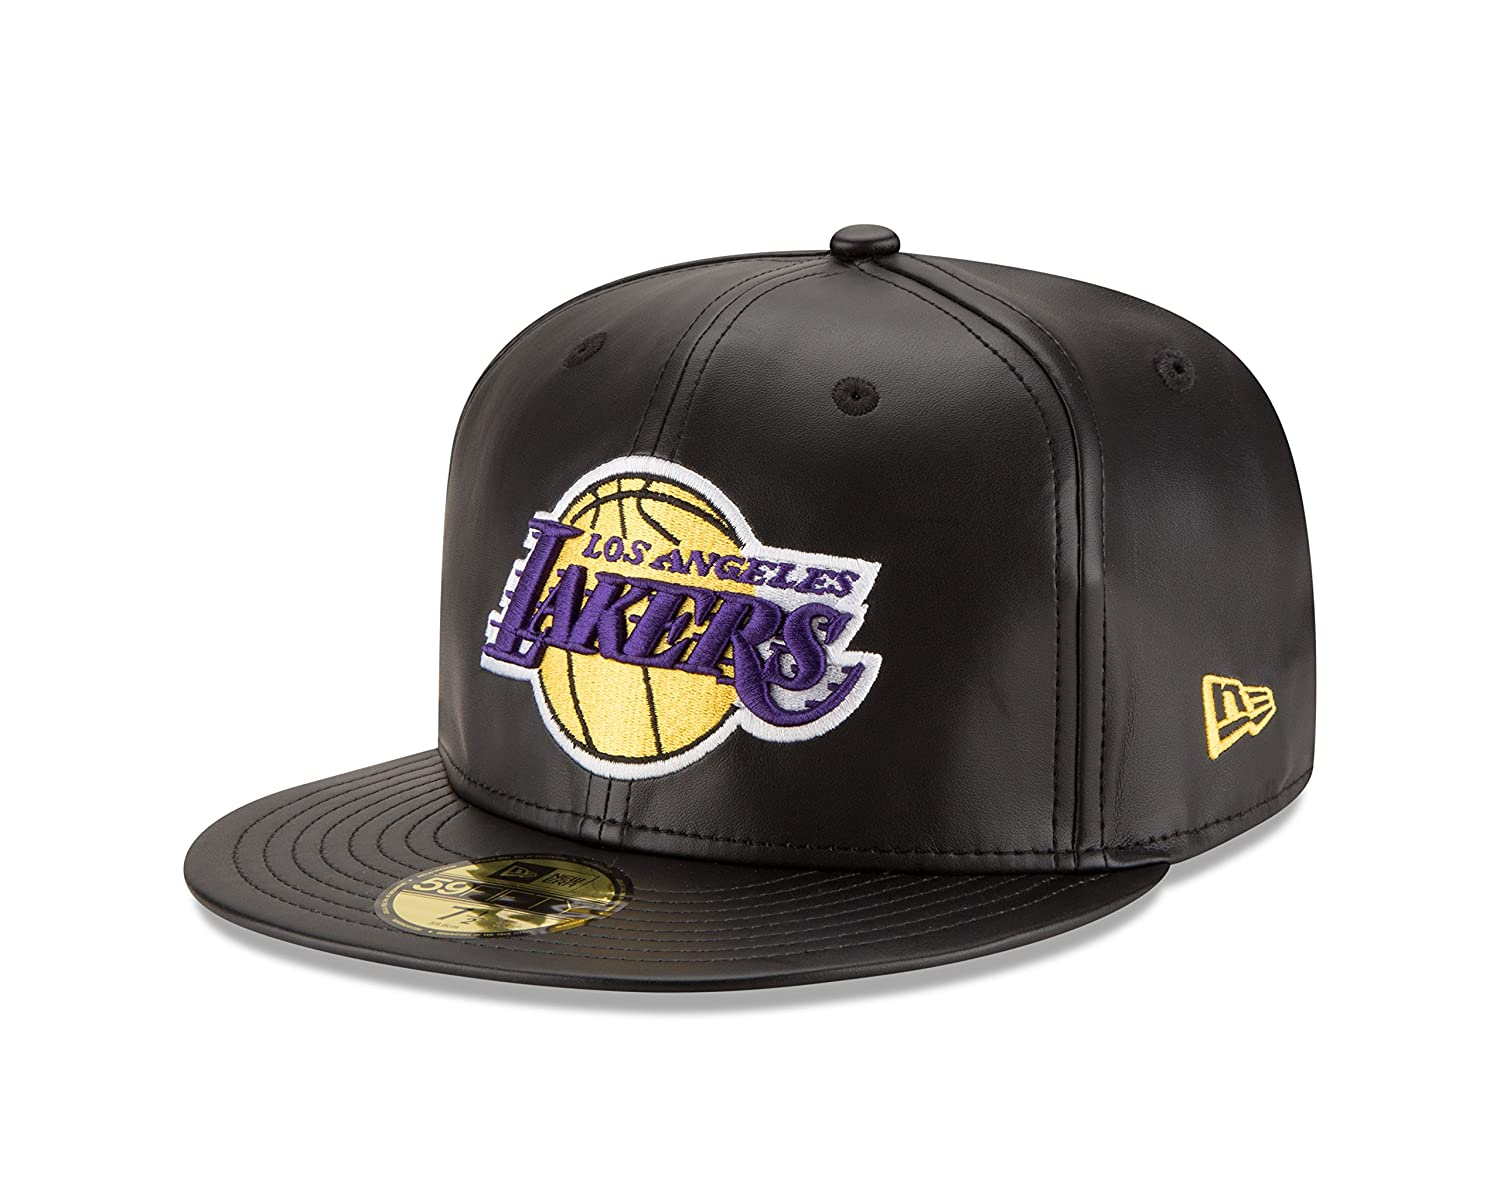 (Los Angeles Lakers, 7.625, Black) - NBA Men's Faux Leather 59FIFTY Fitted Cap   B01M0OJB2G